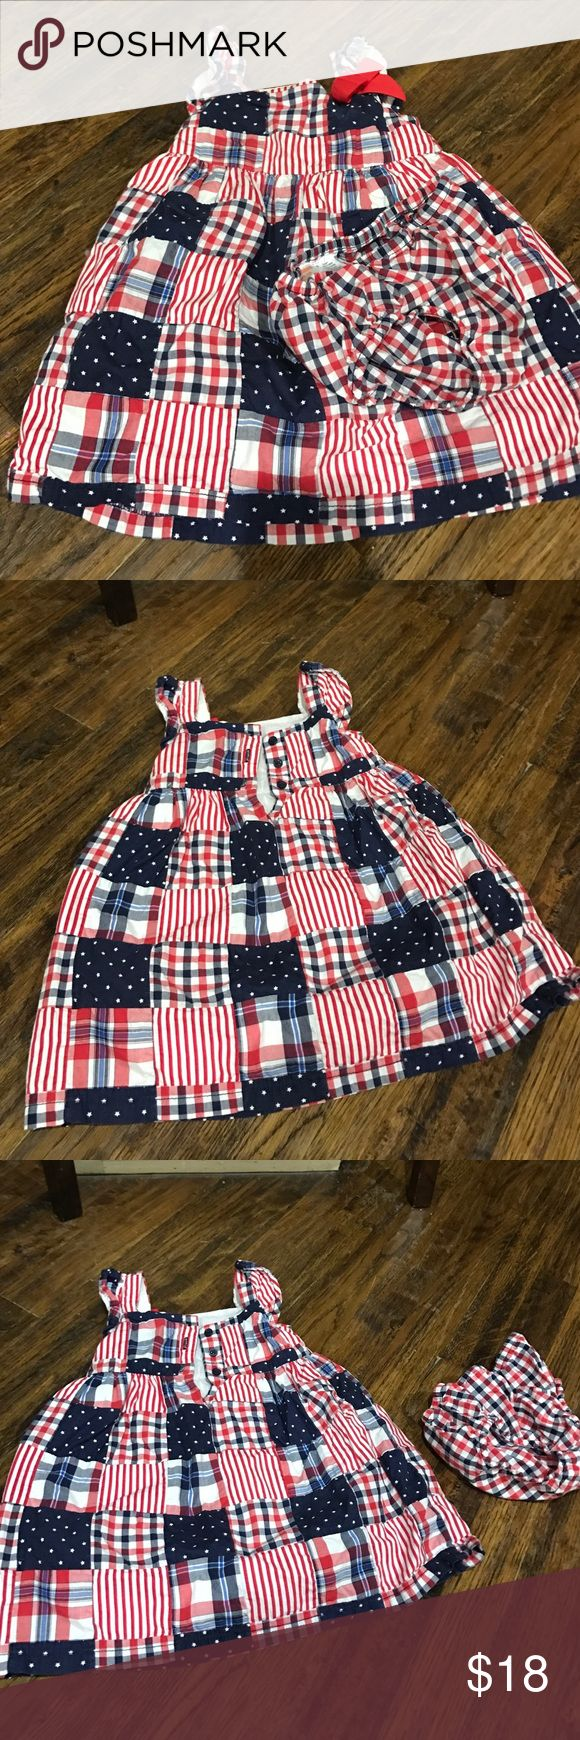 Patriotic dress 12-18 month Gymboree worn once Cute red white and blue Gymboree dress worn one time. 12-18 month. Gymboree Dresses Casual